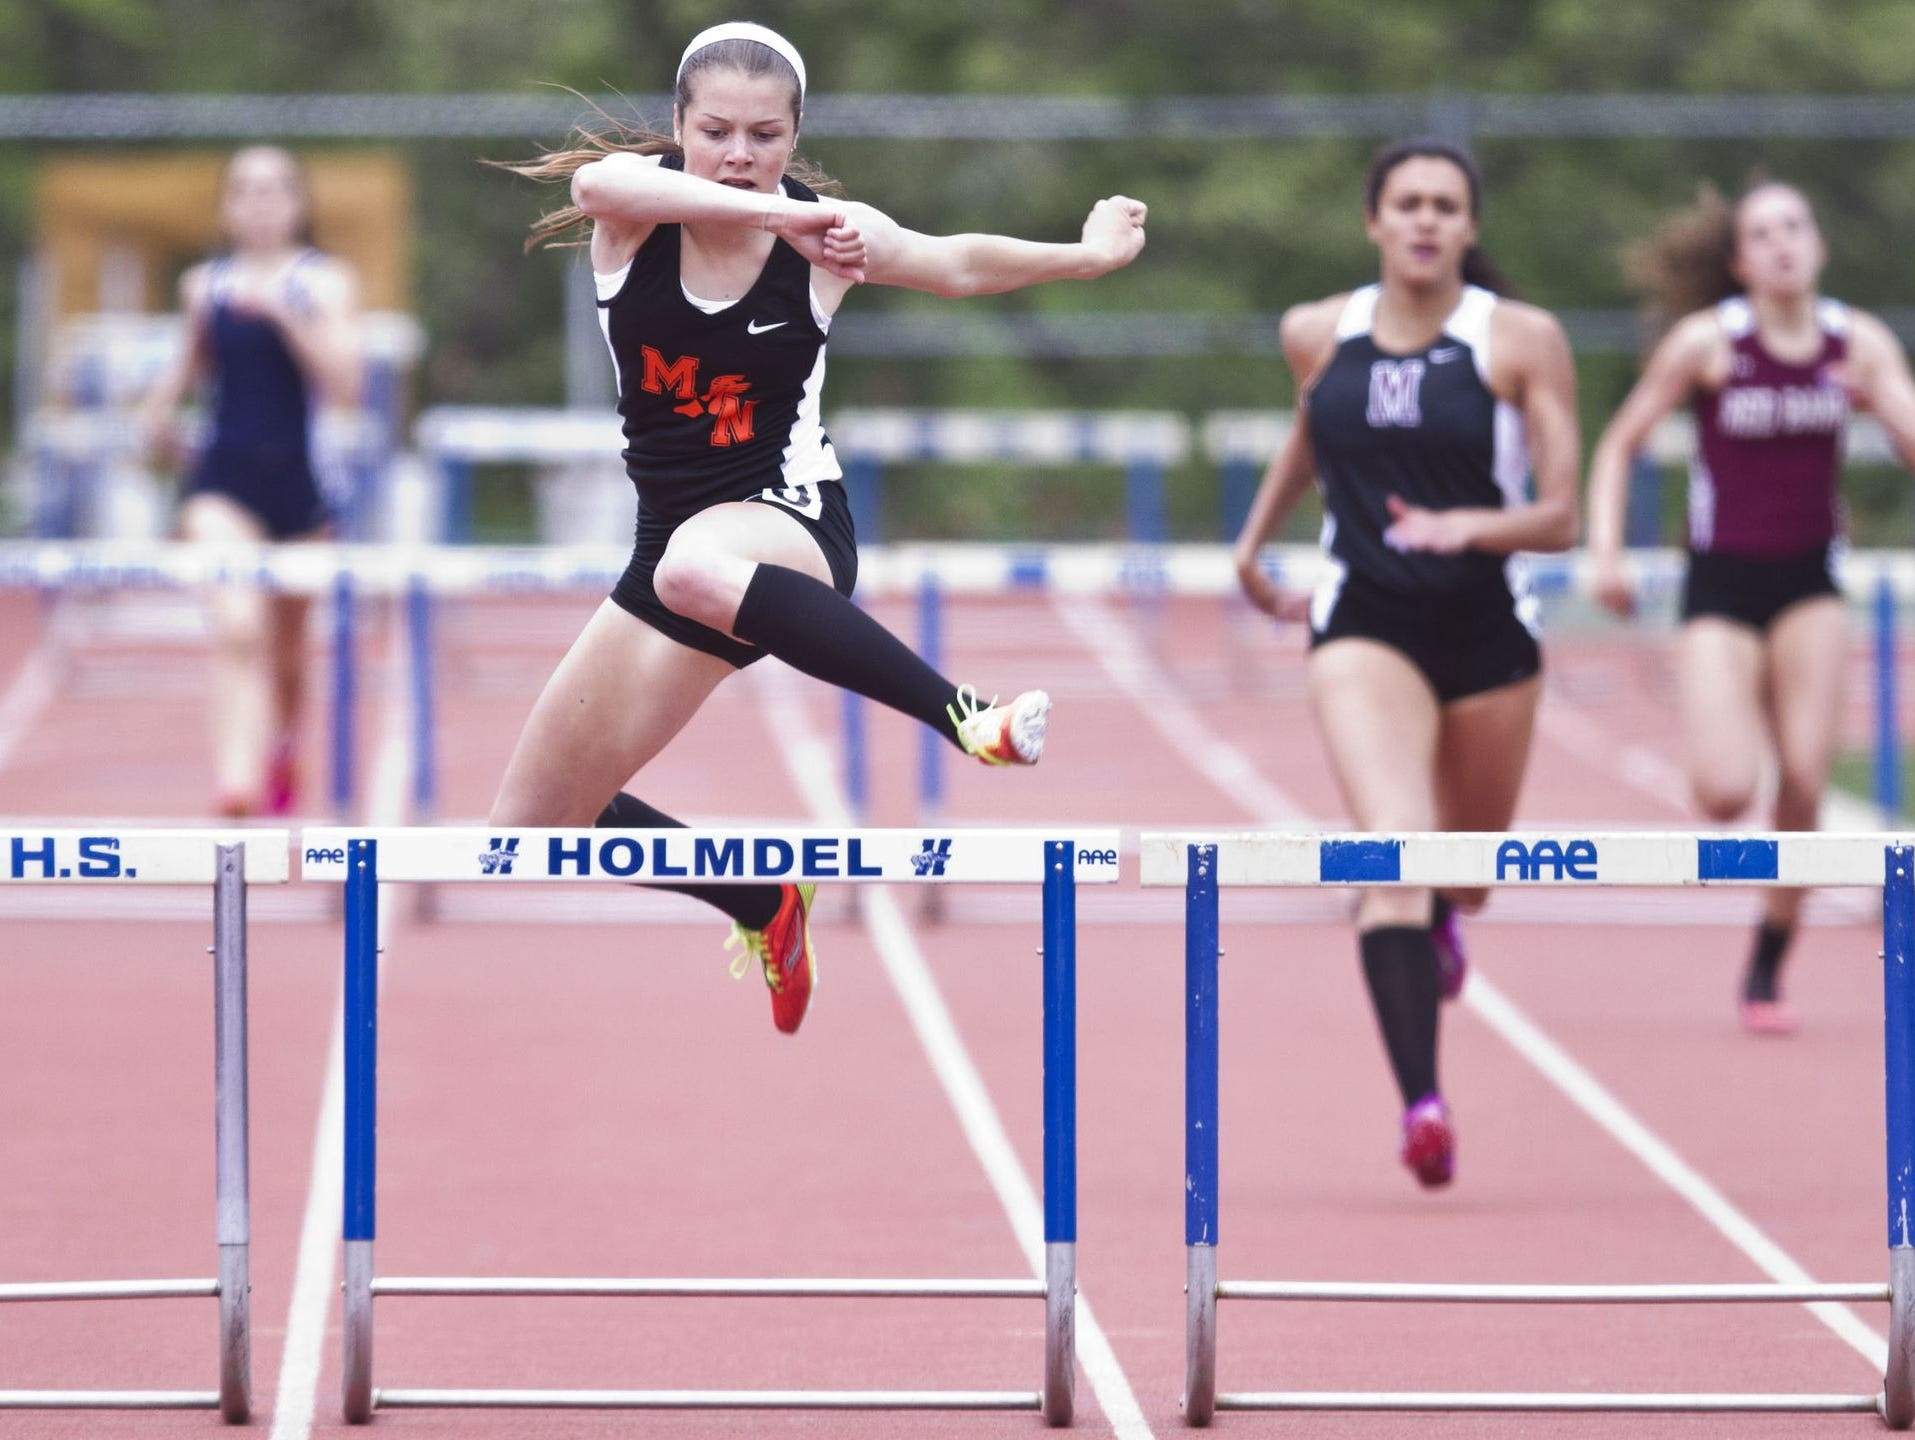 Jenna Reid of Middletown North takes first place in the 400 Intermediate Hurdles event. Monmouth County Track & Field Championships. Wednesday, May 6, 2015